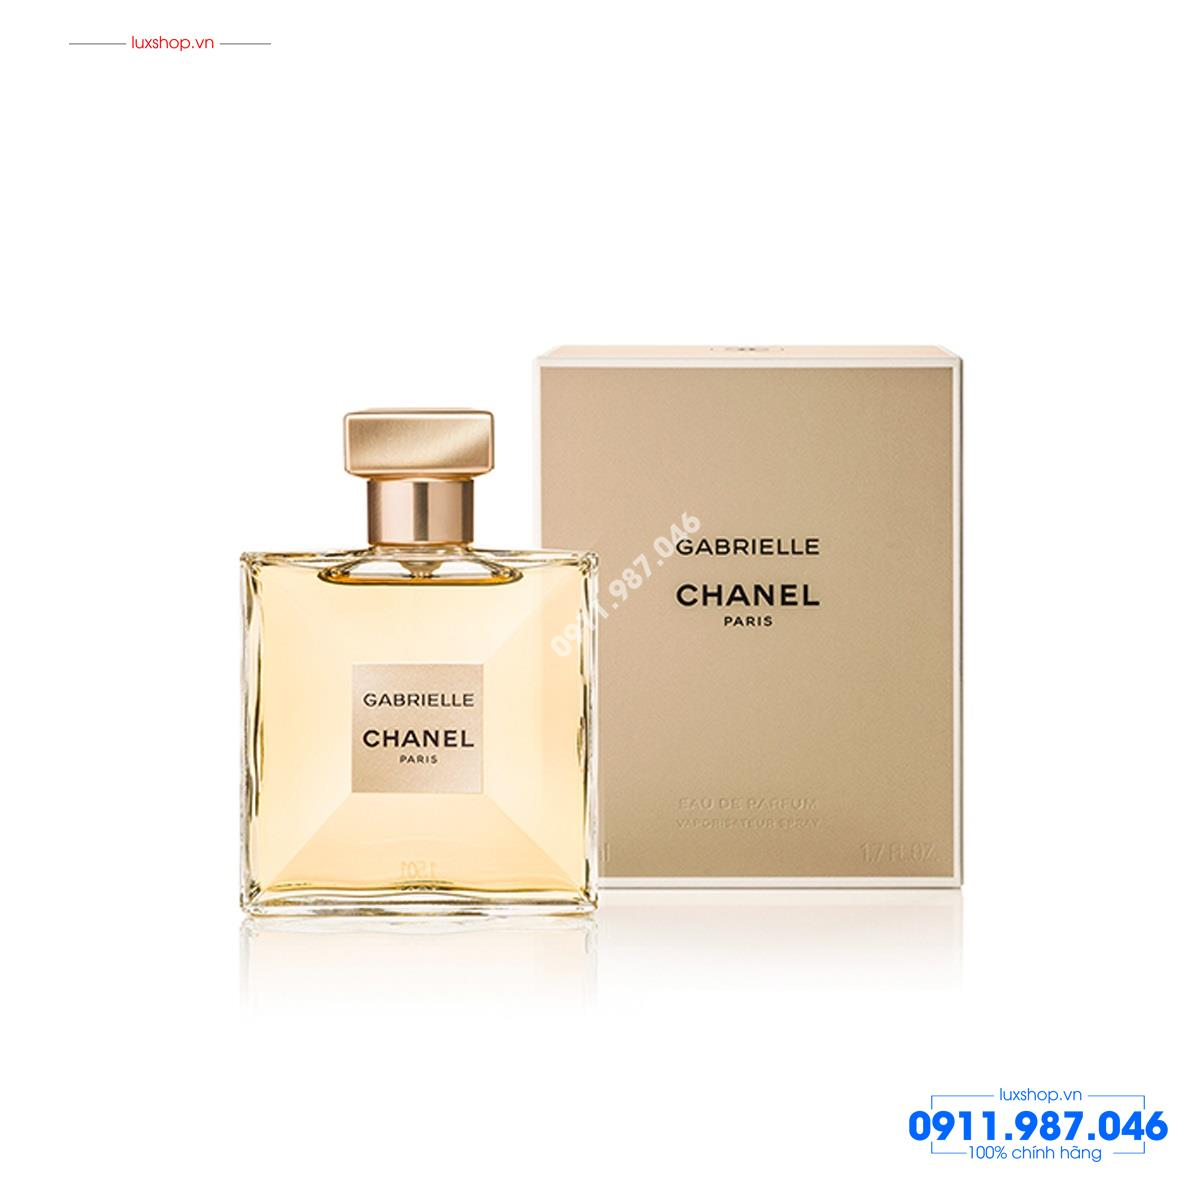 nuoc-hoa-nu-gabrielle-chanel-edp-mini-5ml-chinh-hang-phap-67373